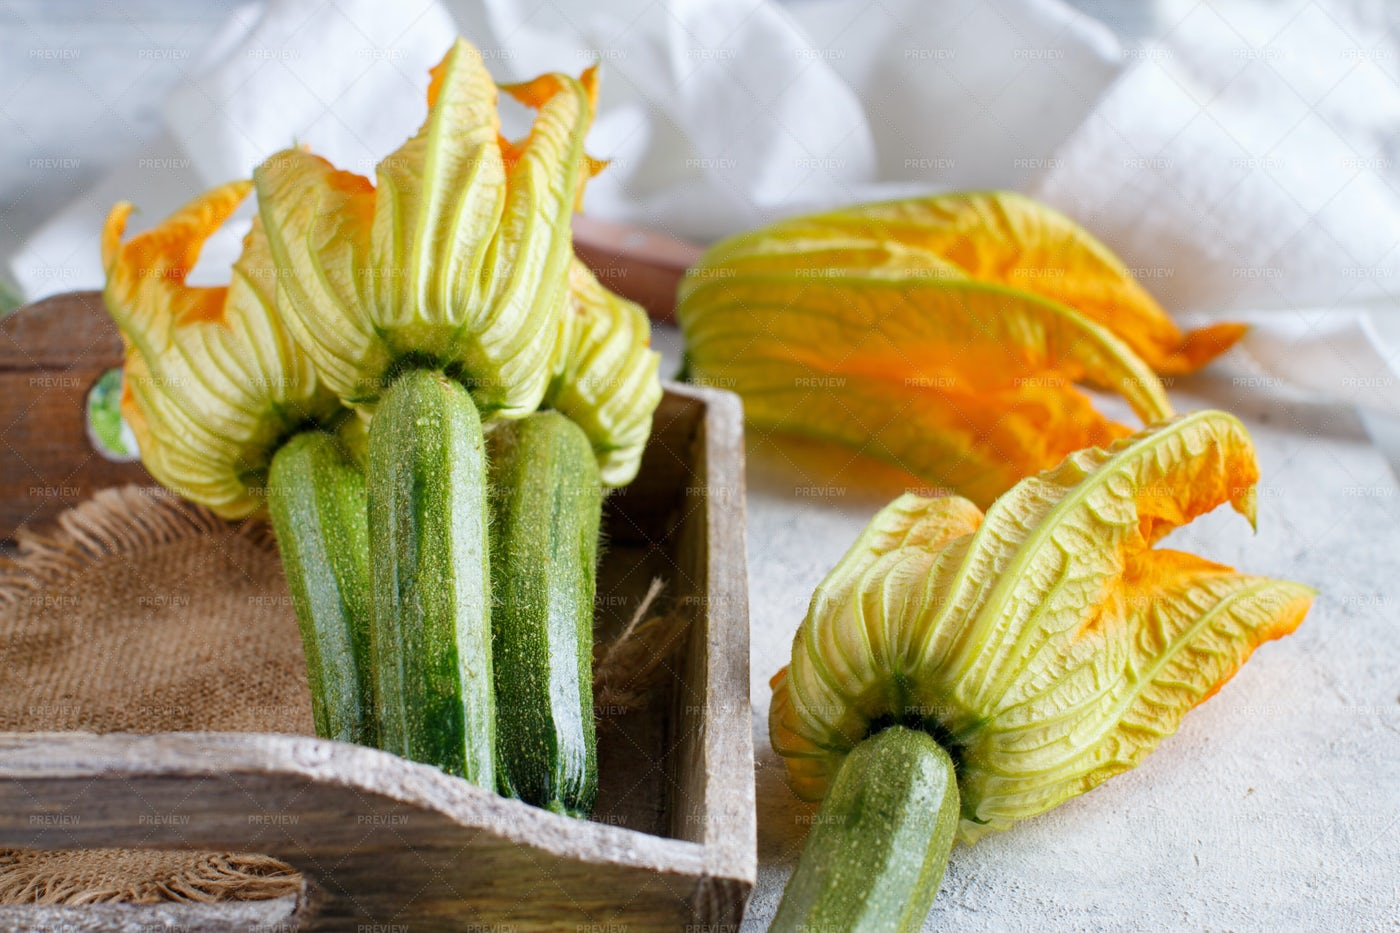 Young Zucchini With Flowers: Stock Photos